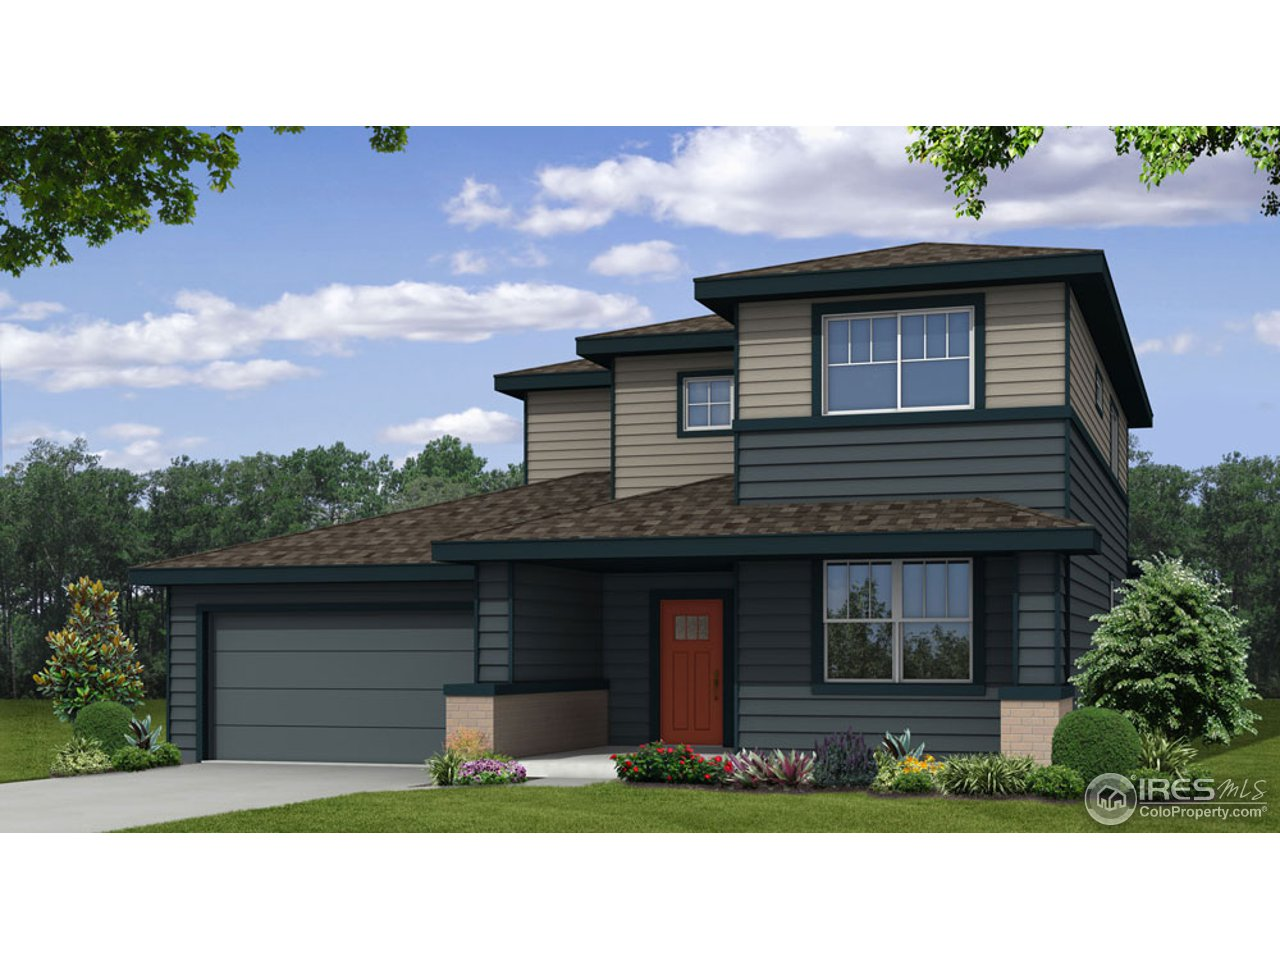 2186 Lager St, Fort Collins CO 80524